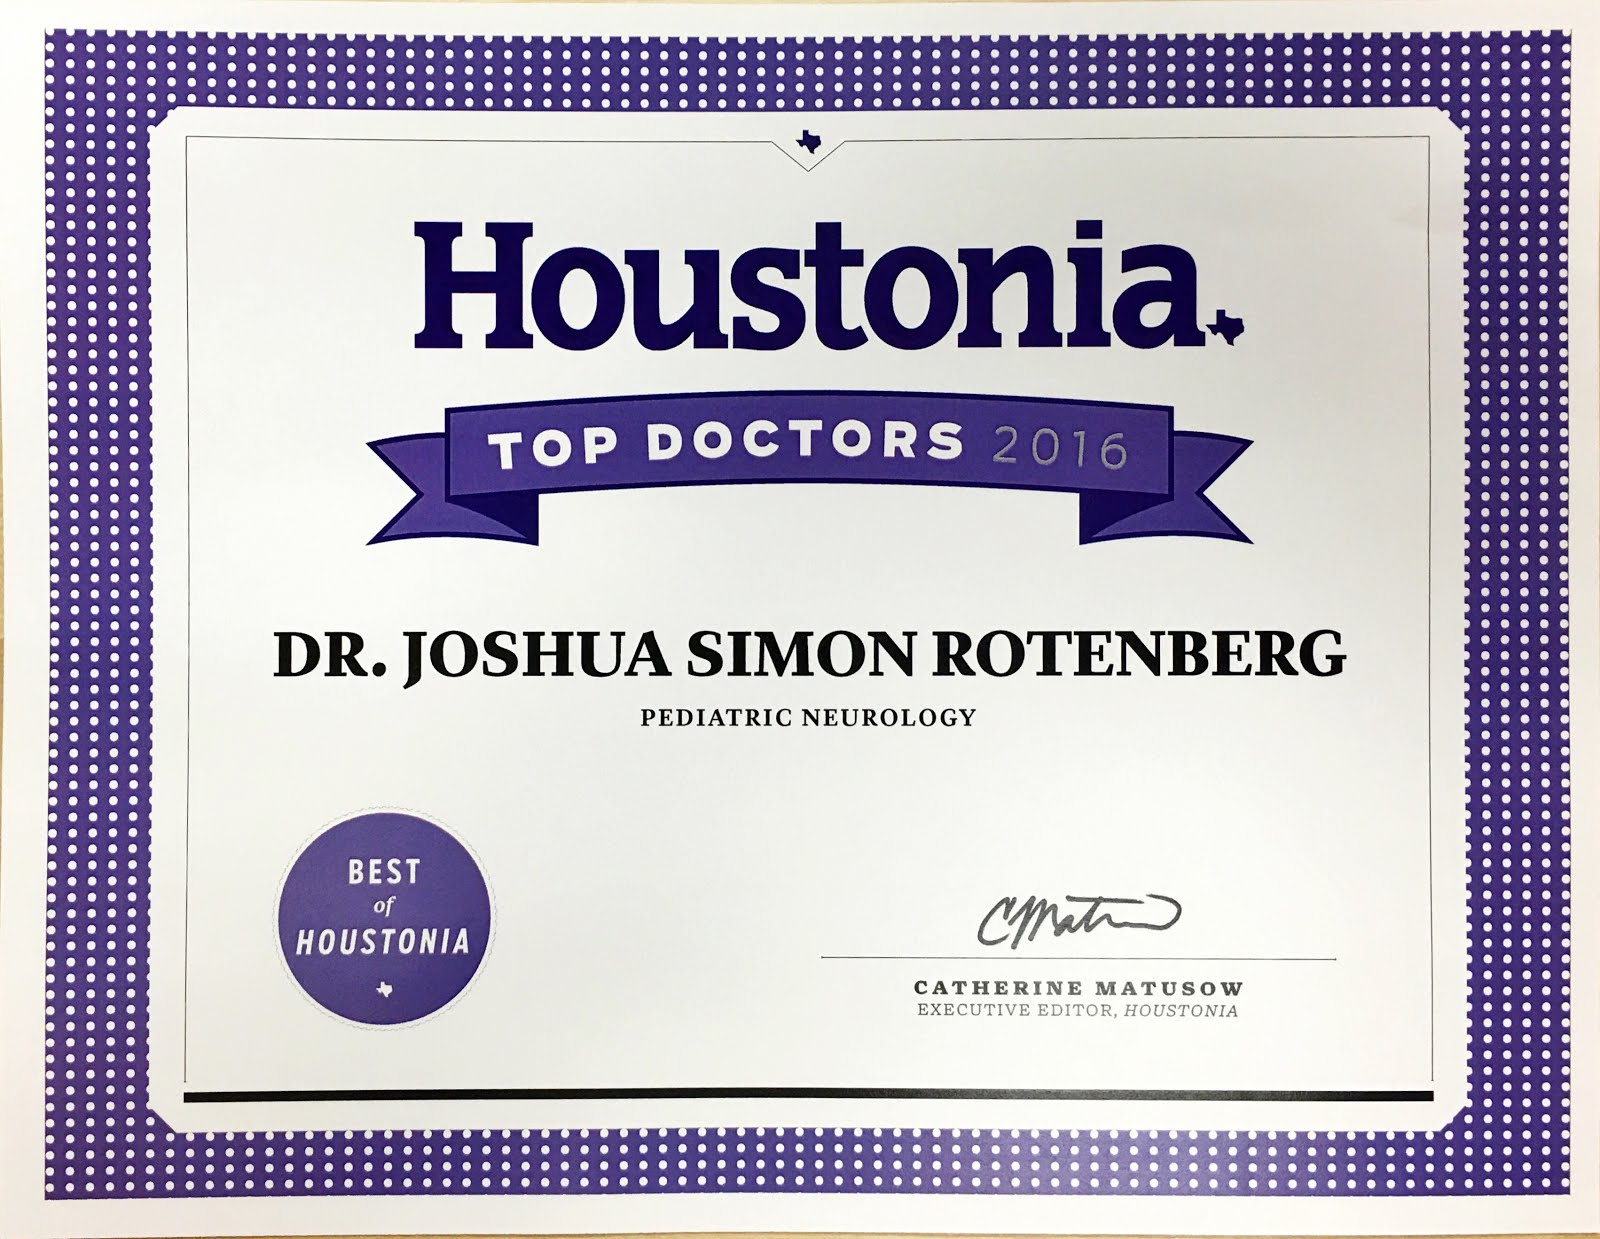 Houston Top Doctors 2016